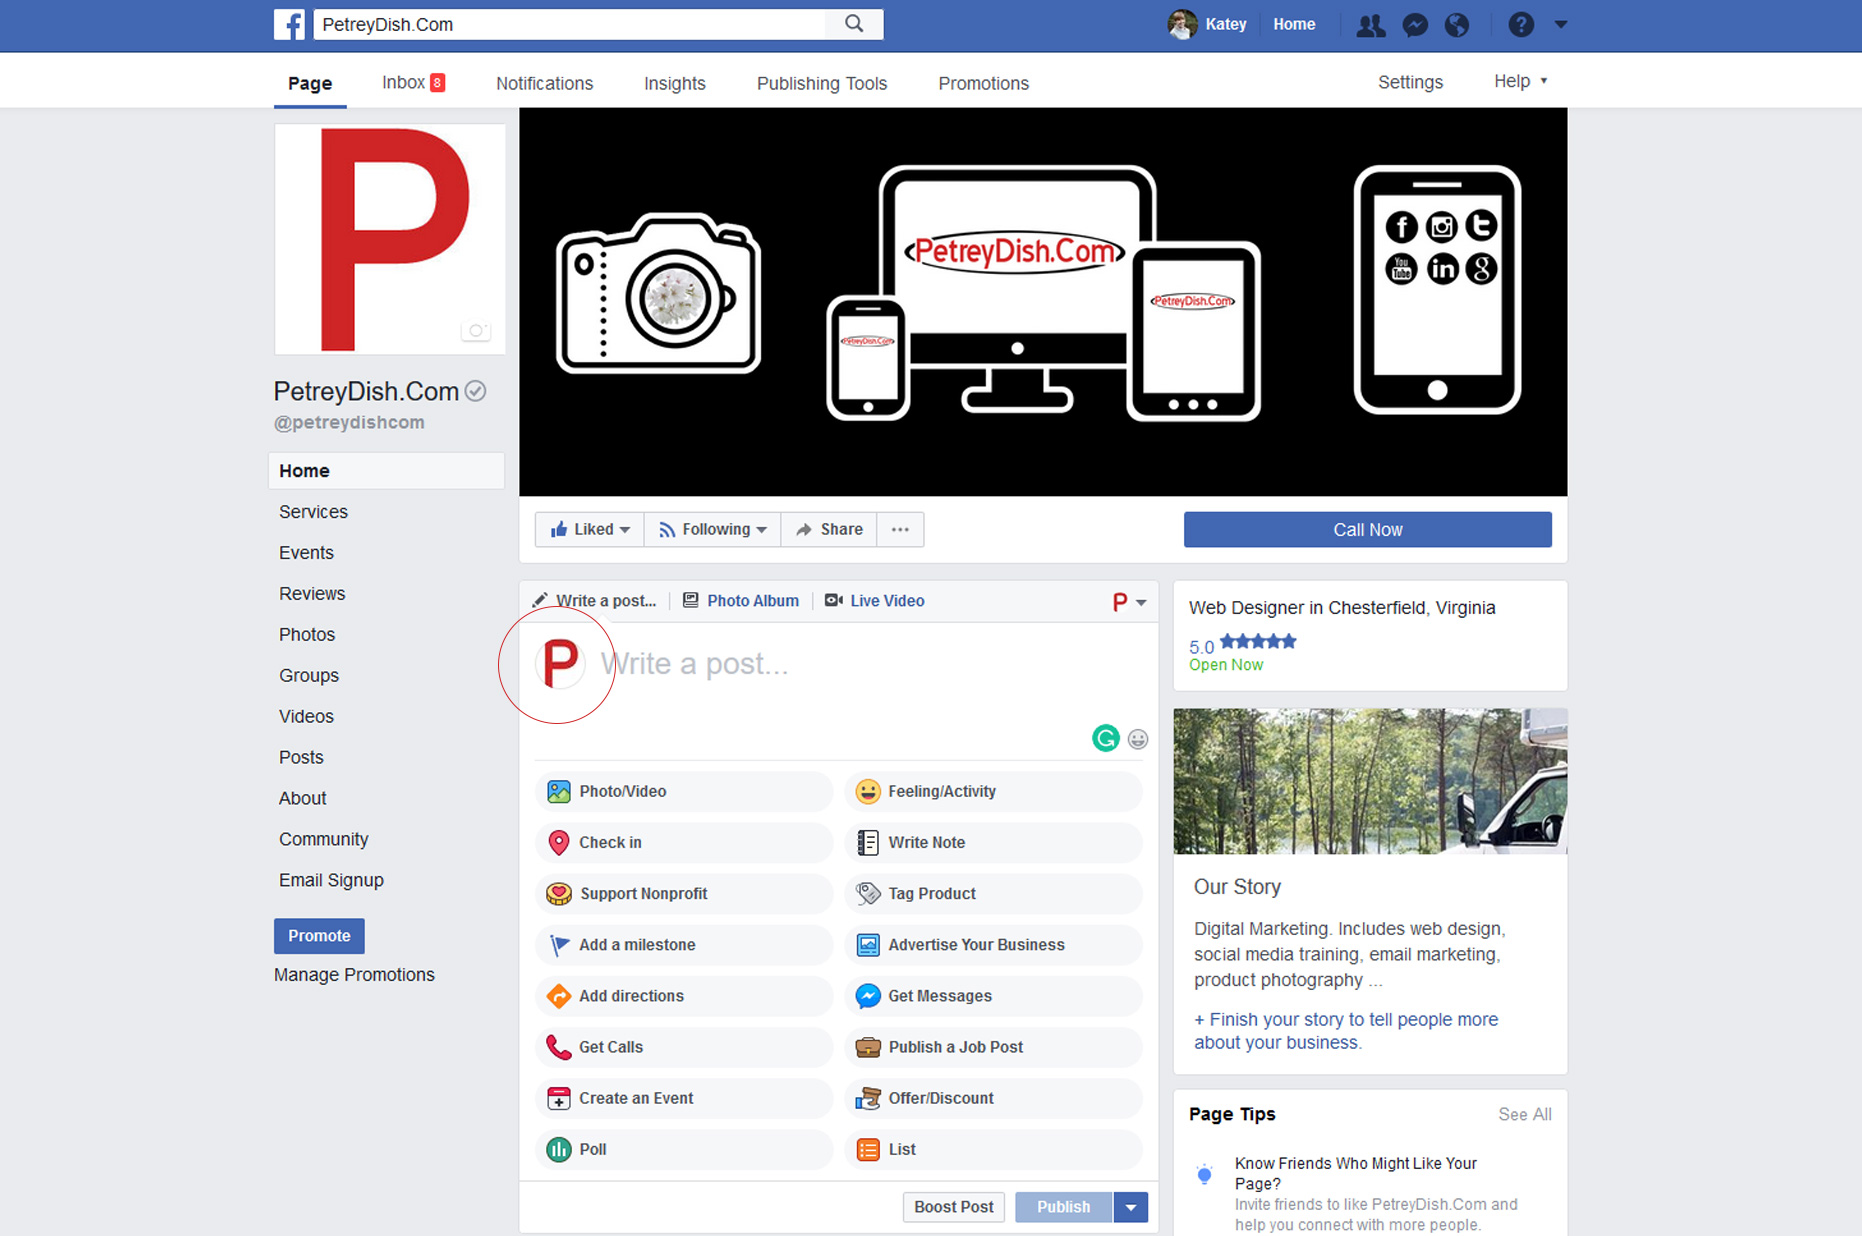 Facebook Business Pages Myths and No-Nos